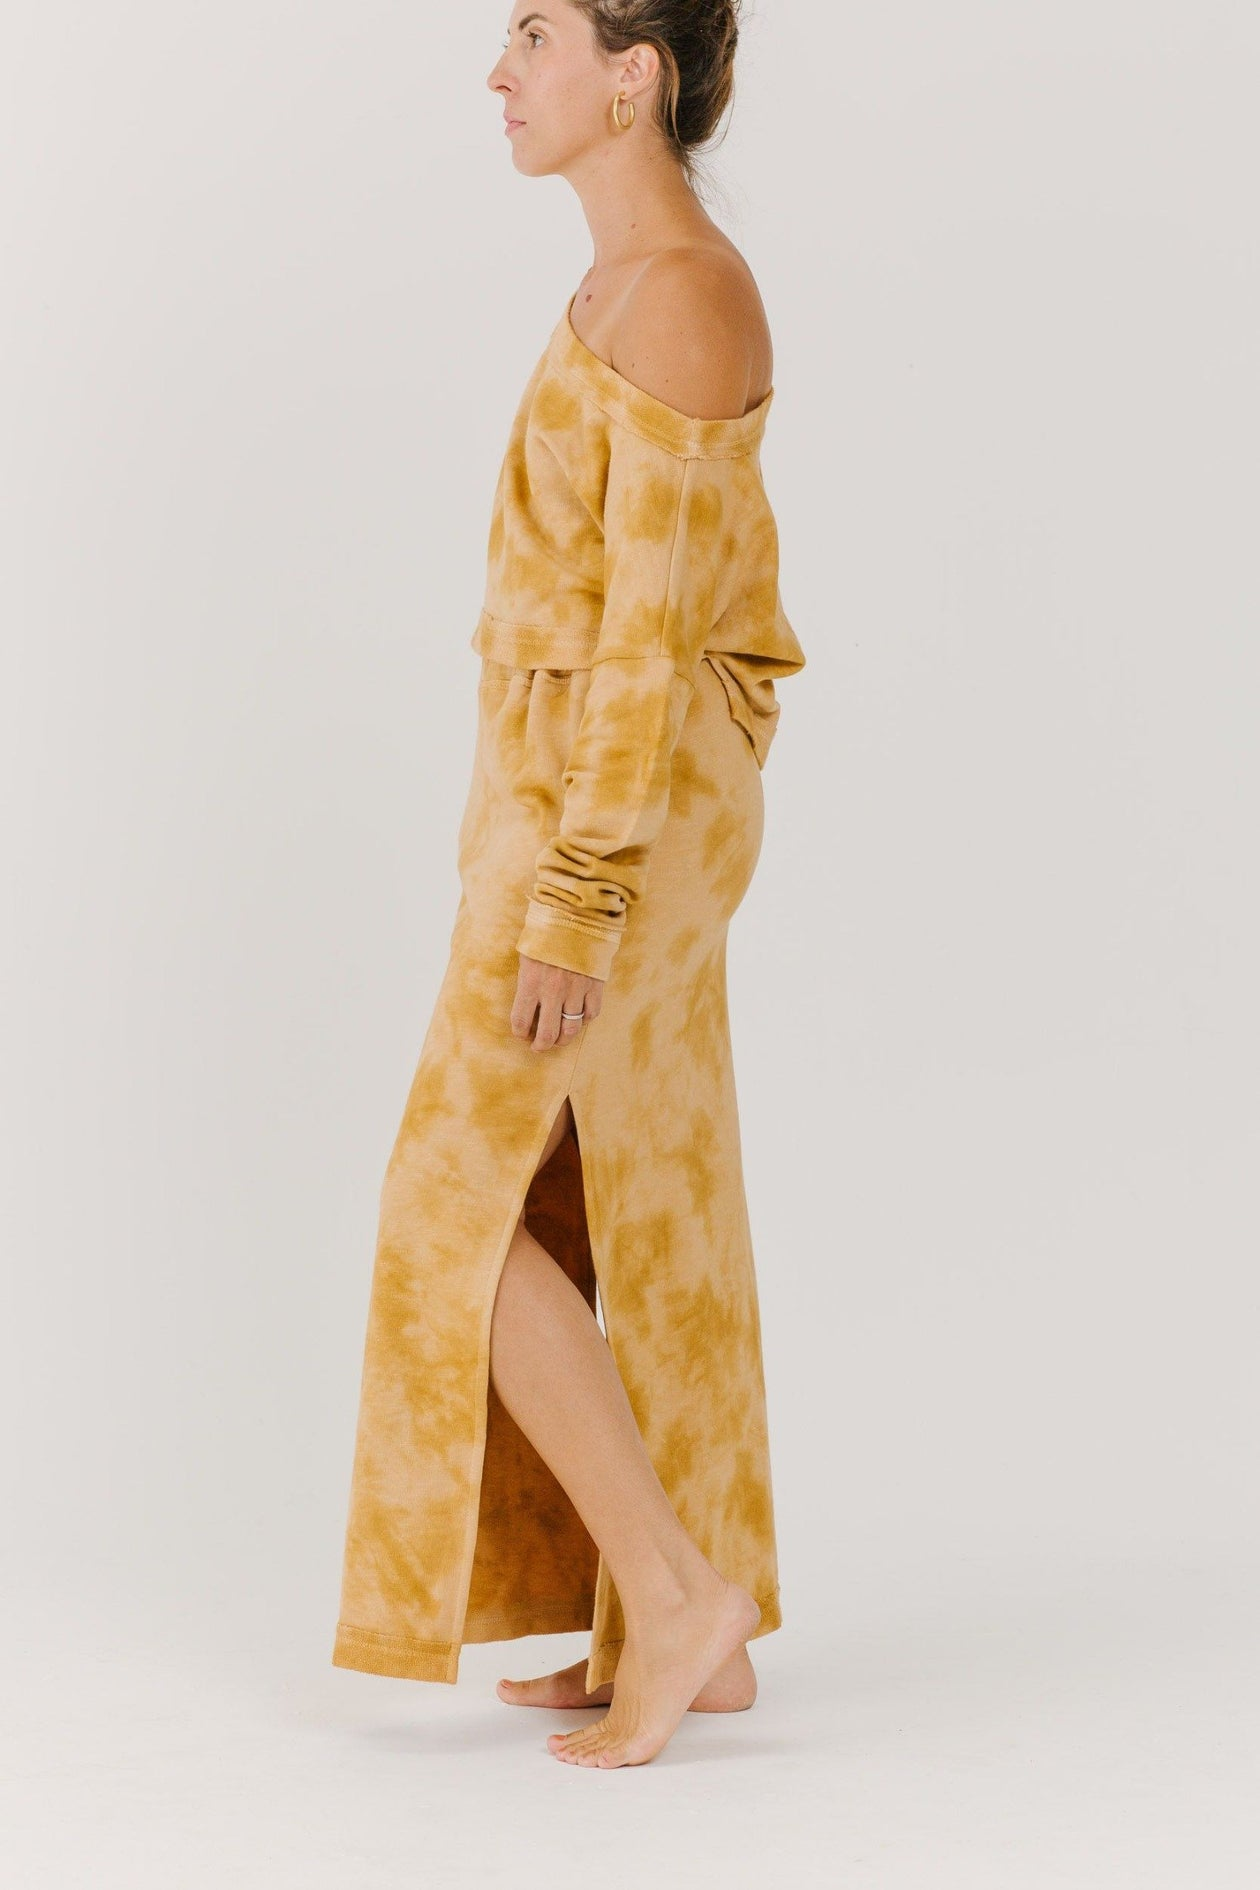 High-waisted Maxi - Sunset | Bohemian Mama The Label - Women's Clothing